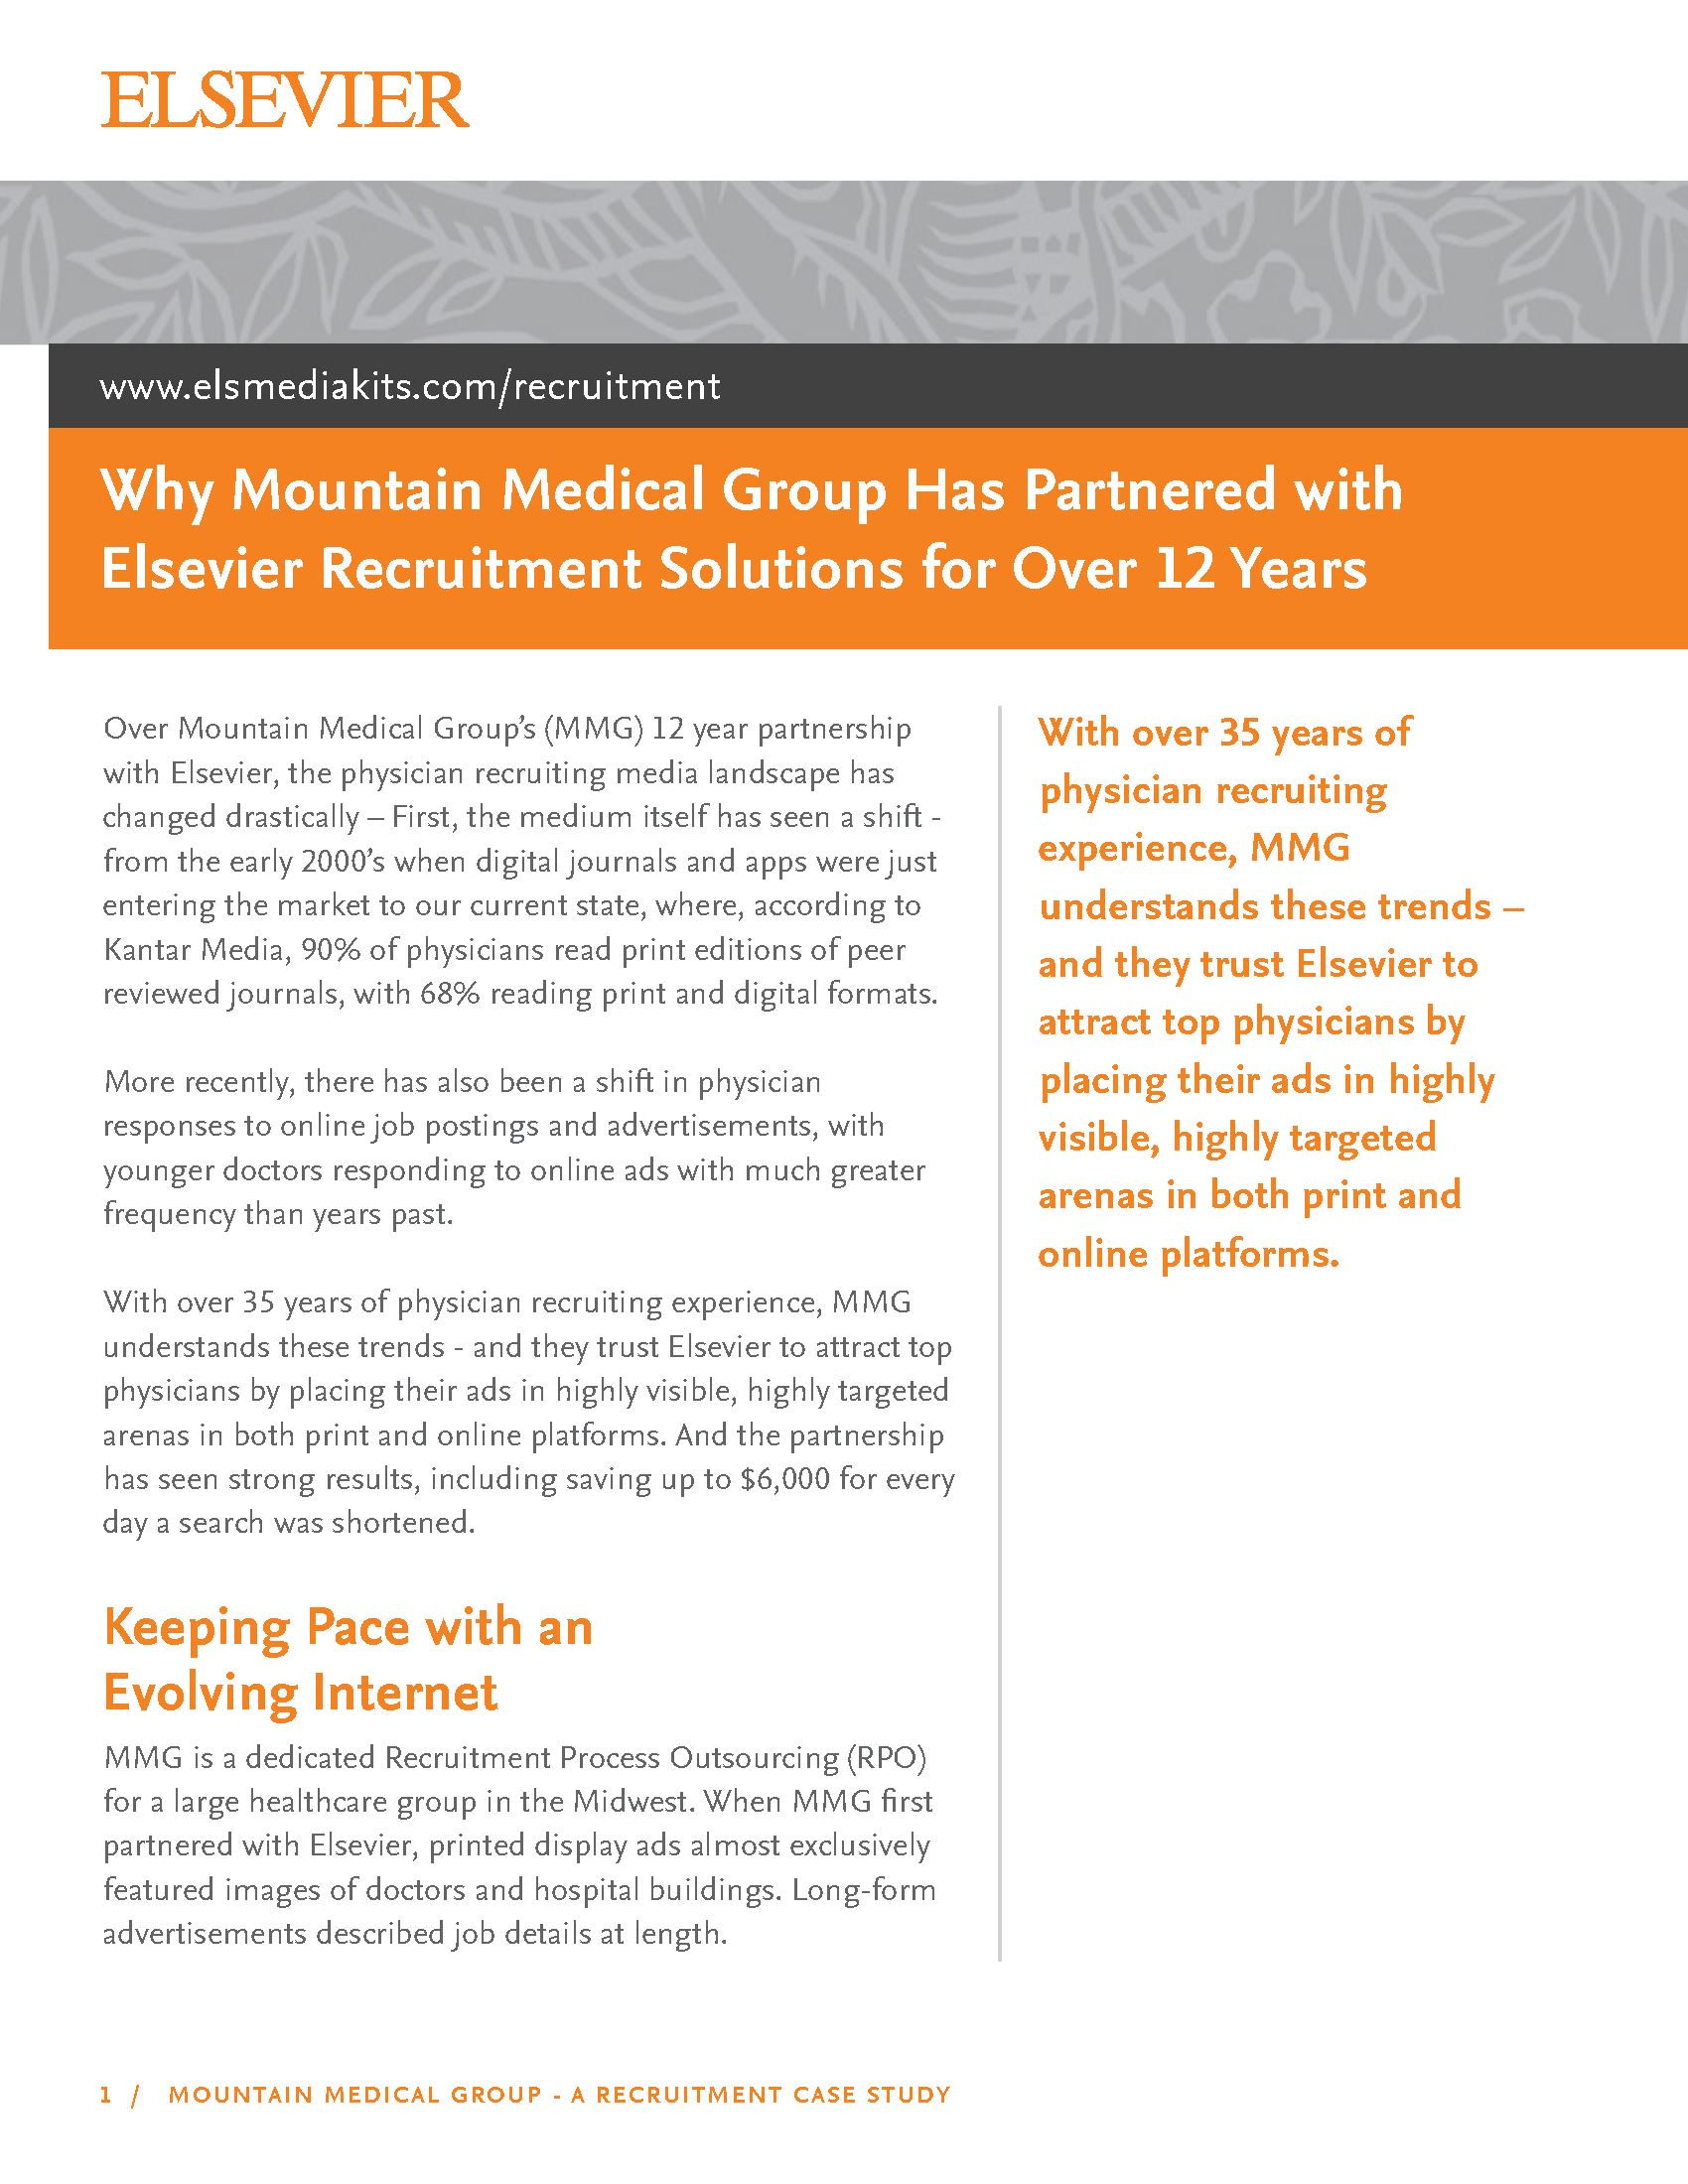 Elsevier October Case Study_Page_1.png